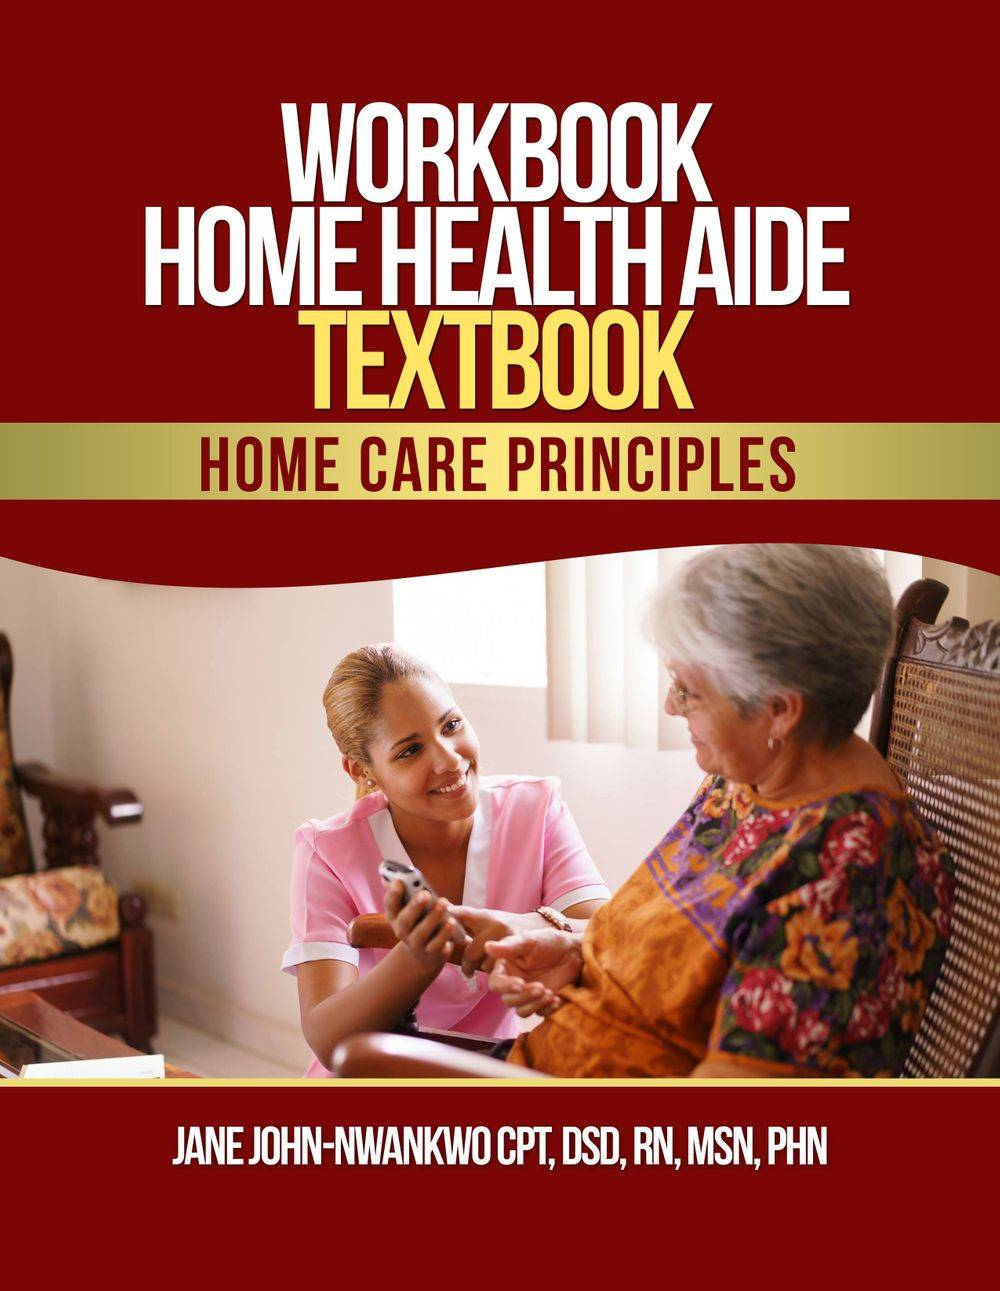 home care book